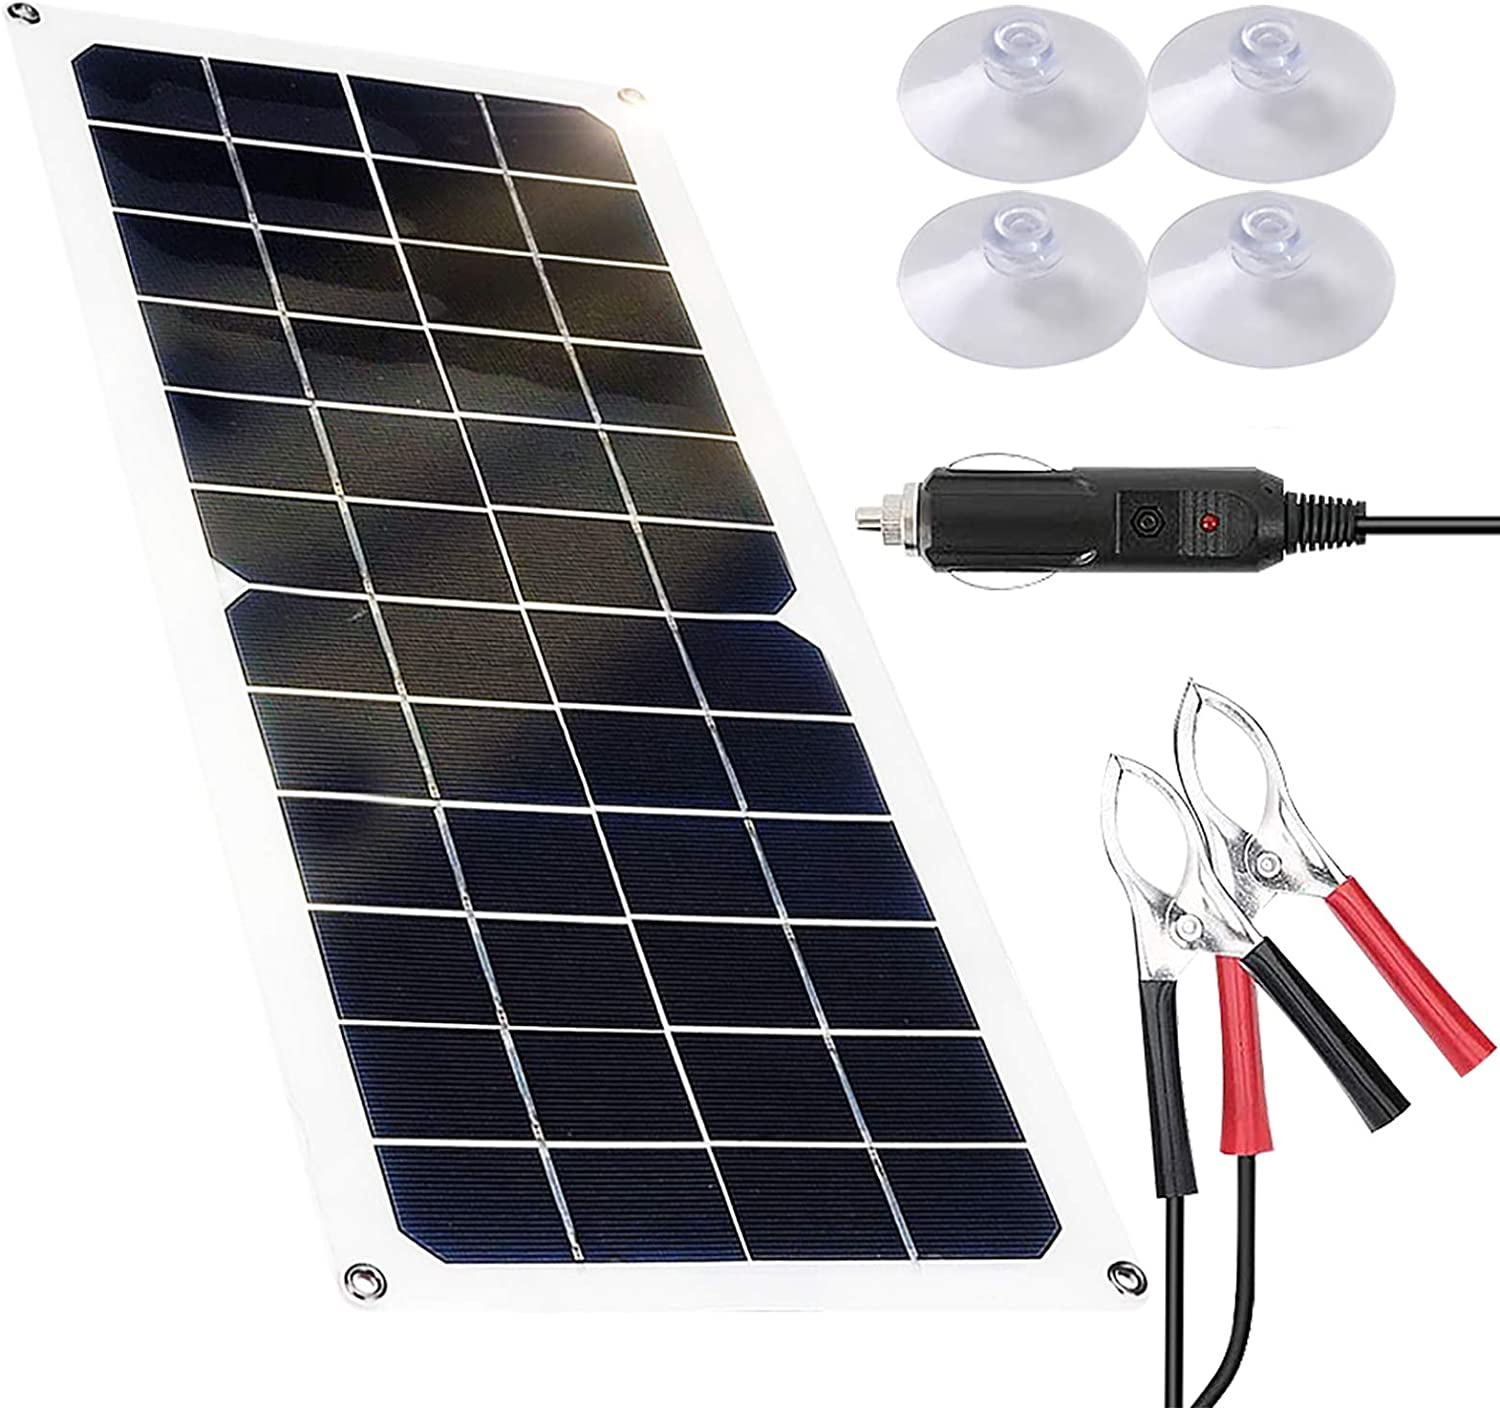 20W Flexible Solar Battery Charger 12 Volt Solar Panel Kit Waterproof Portable Monocrystalline Emergency Charging for Car Homes RV Boat Phone Camping Travel